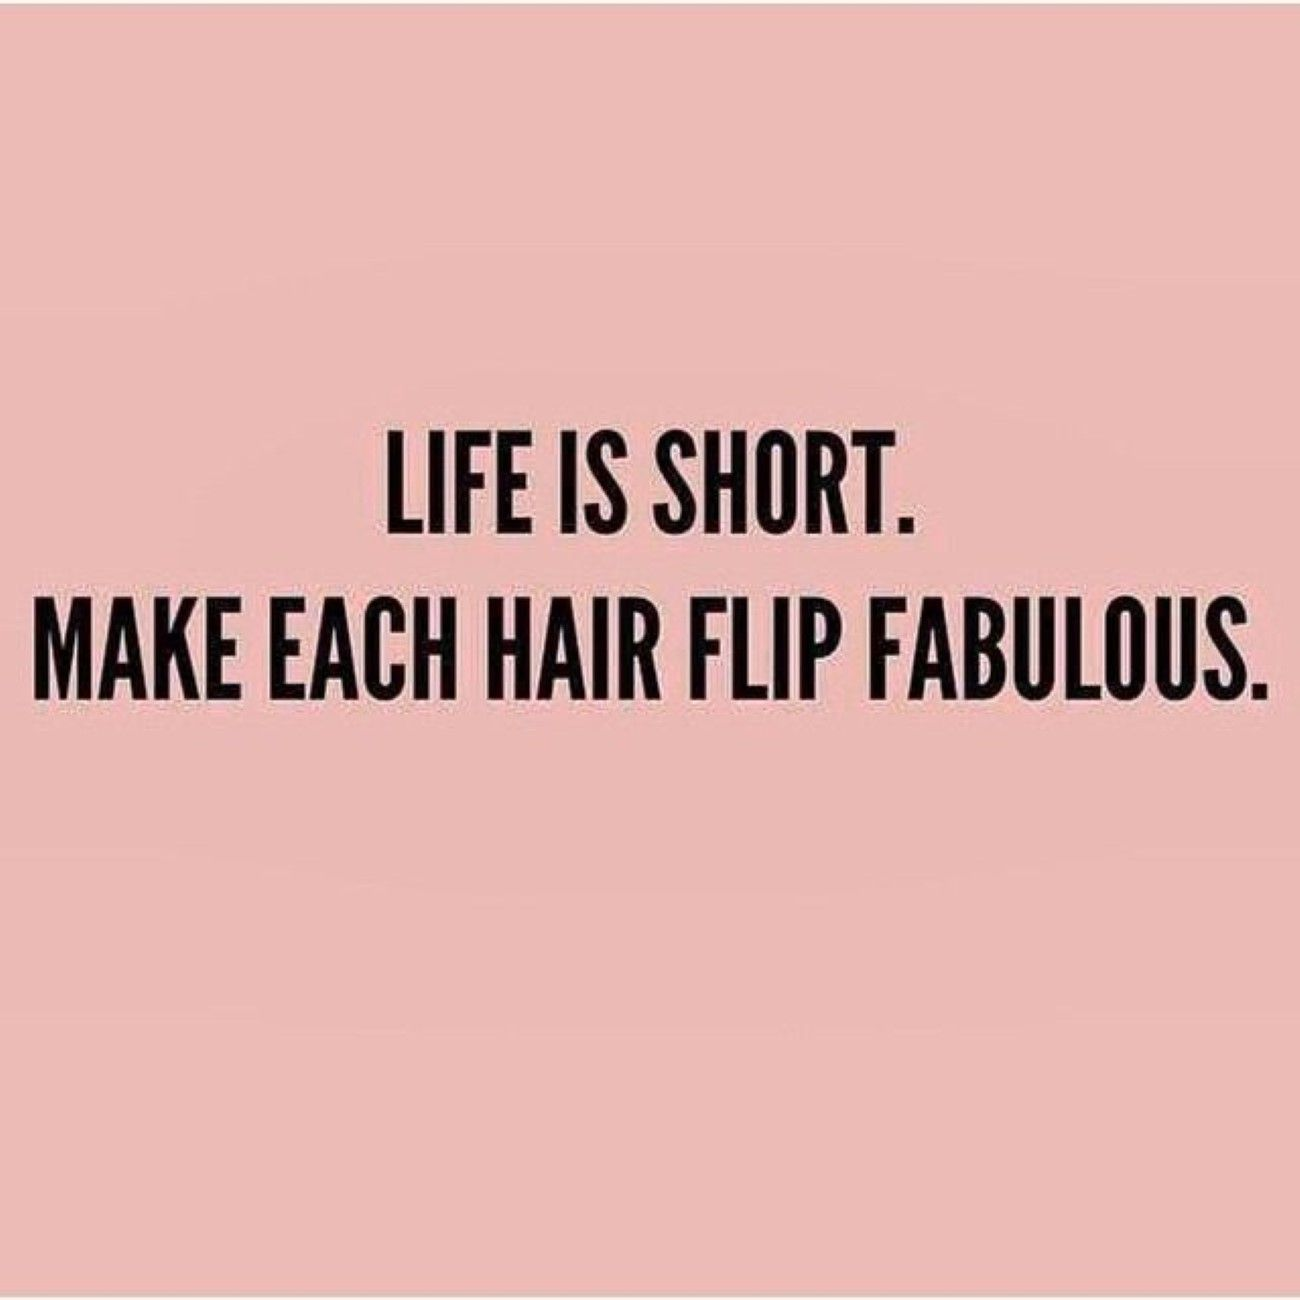 Lifes Too Short Quotes Life's Too Short To Not Have Fabulous Hairschedule Your Next